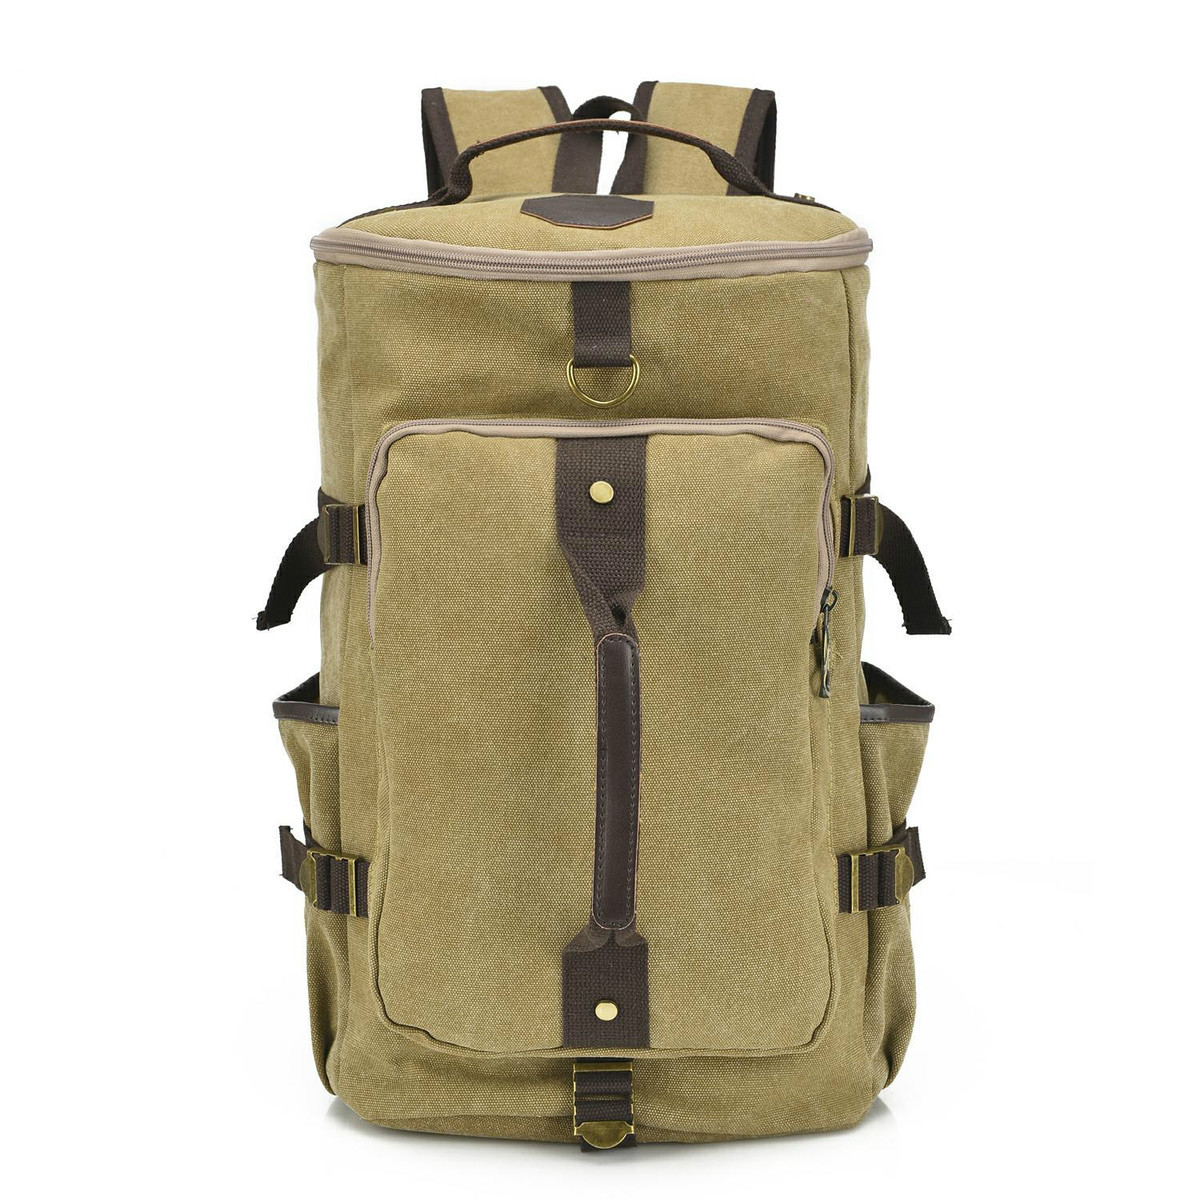 Large Capacity Man Travel Bag Mountaineering laptop Backpack youth Men Bags Canvas Bucket Shoulder Bag Sac A Dos mochila